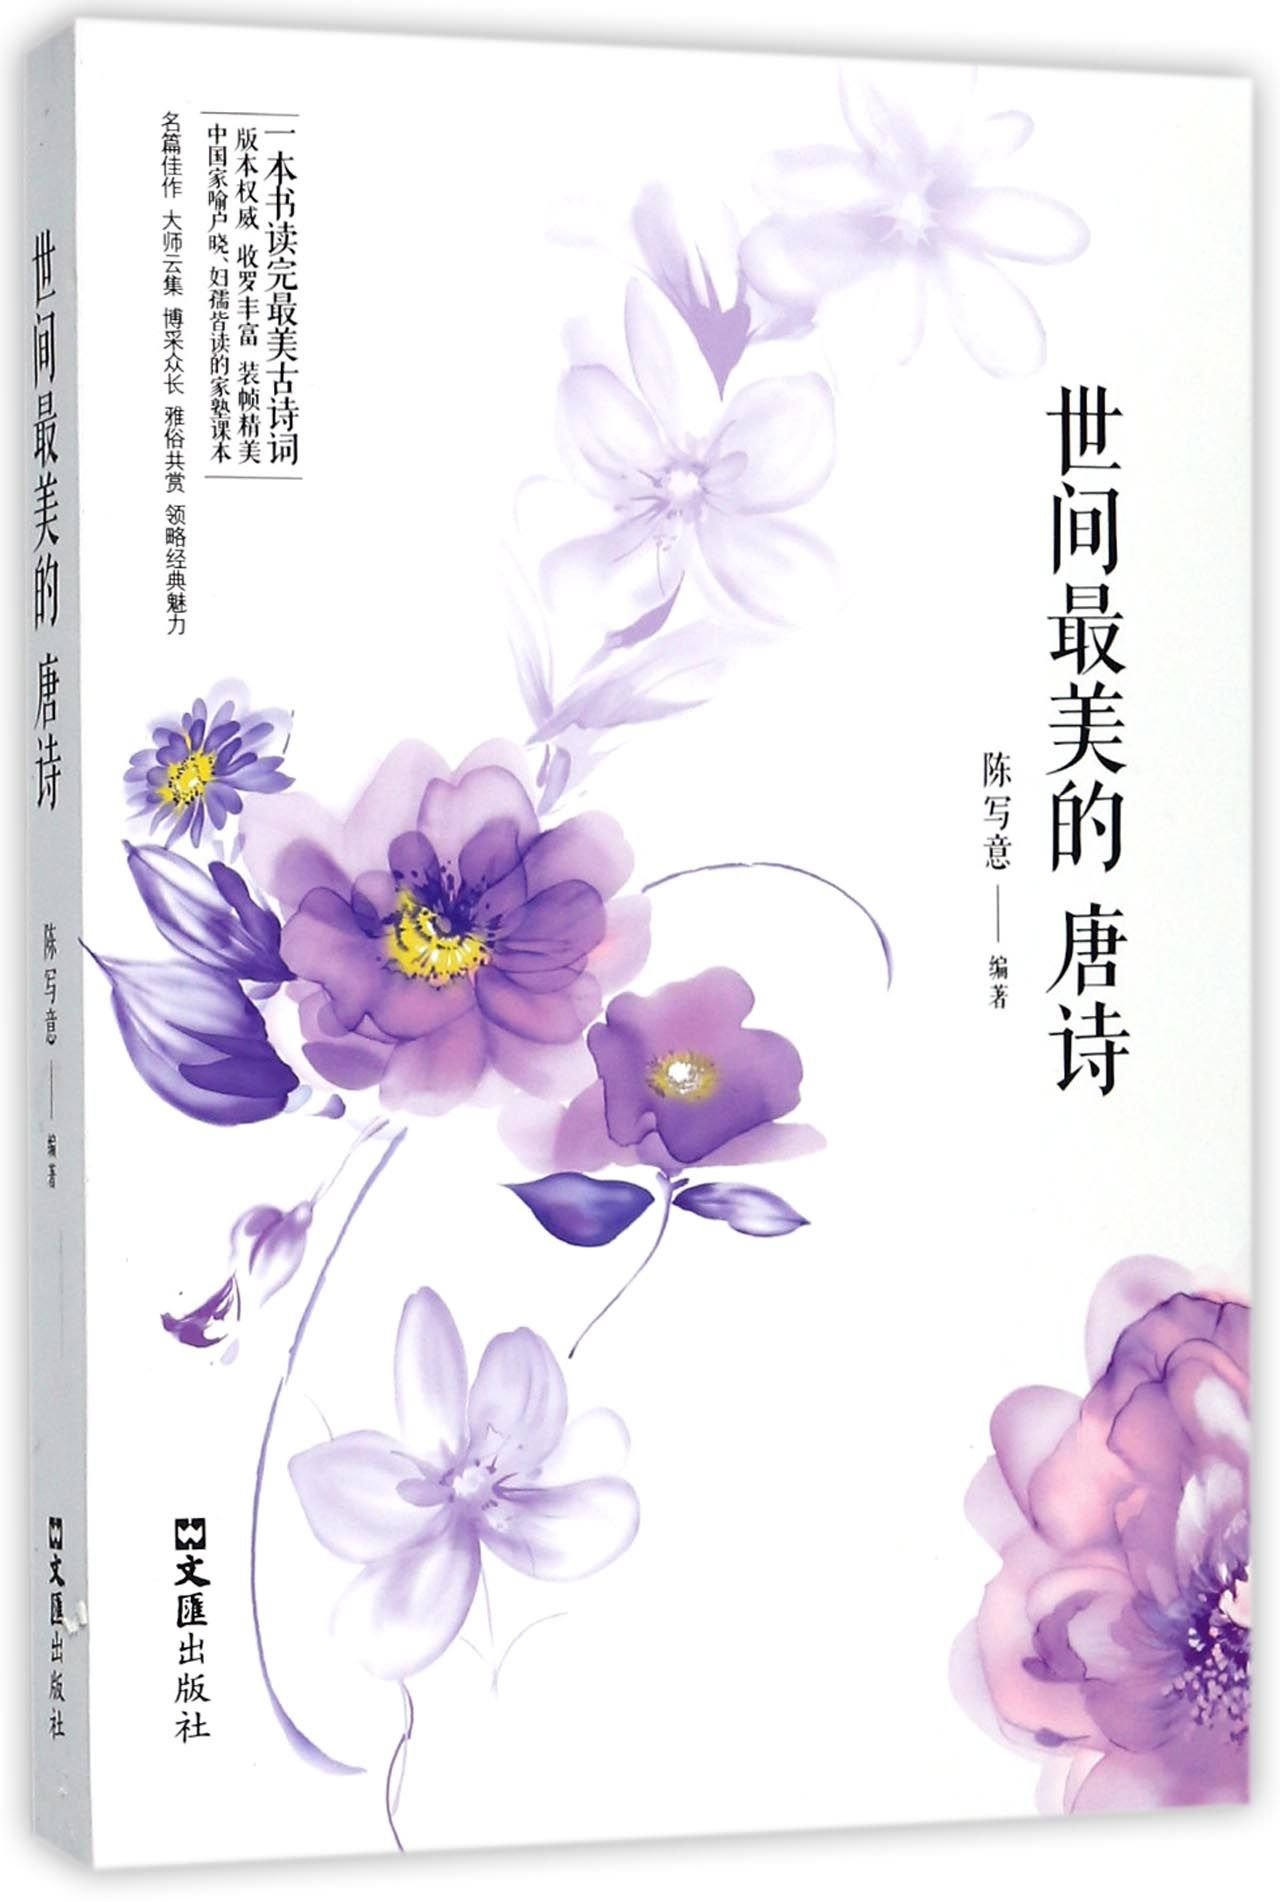 The Most Beautiful Tang Poetry In The World Chinese Edition